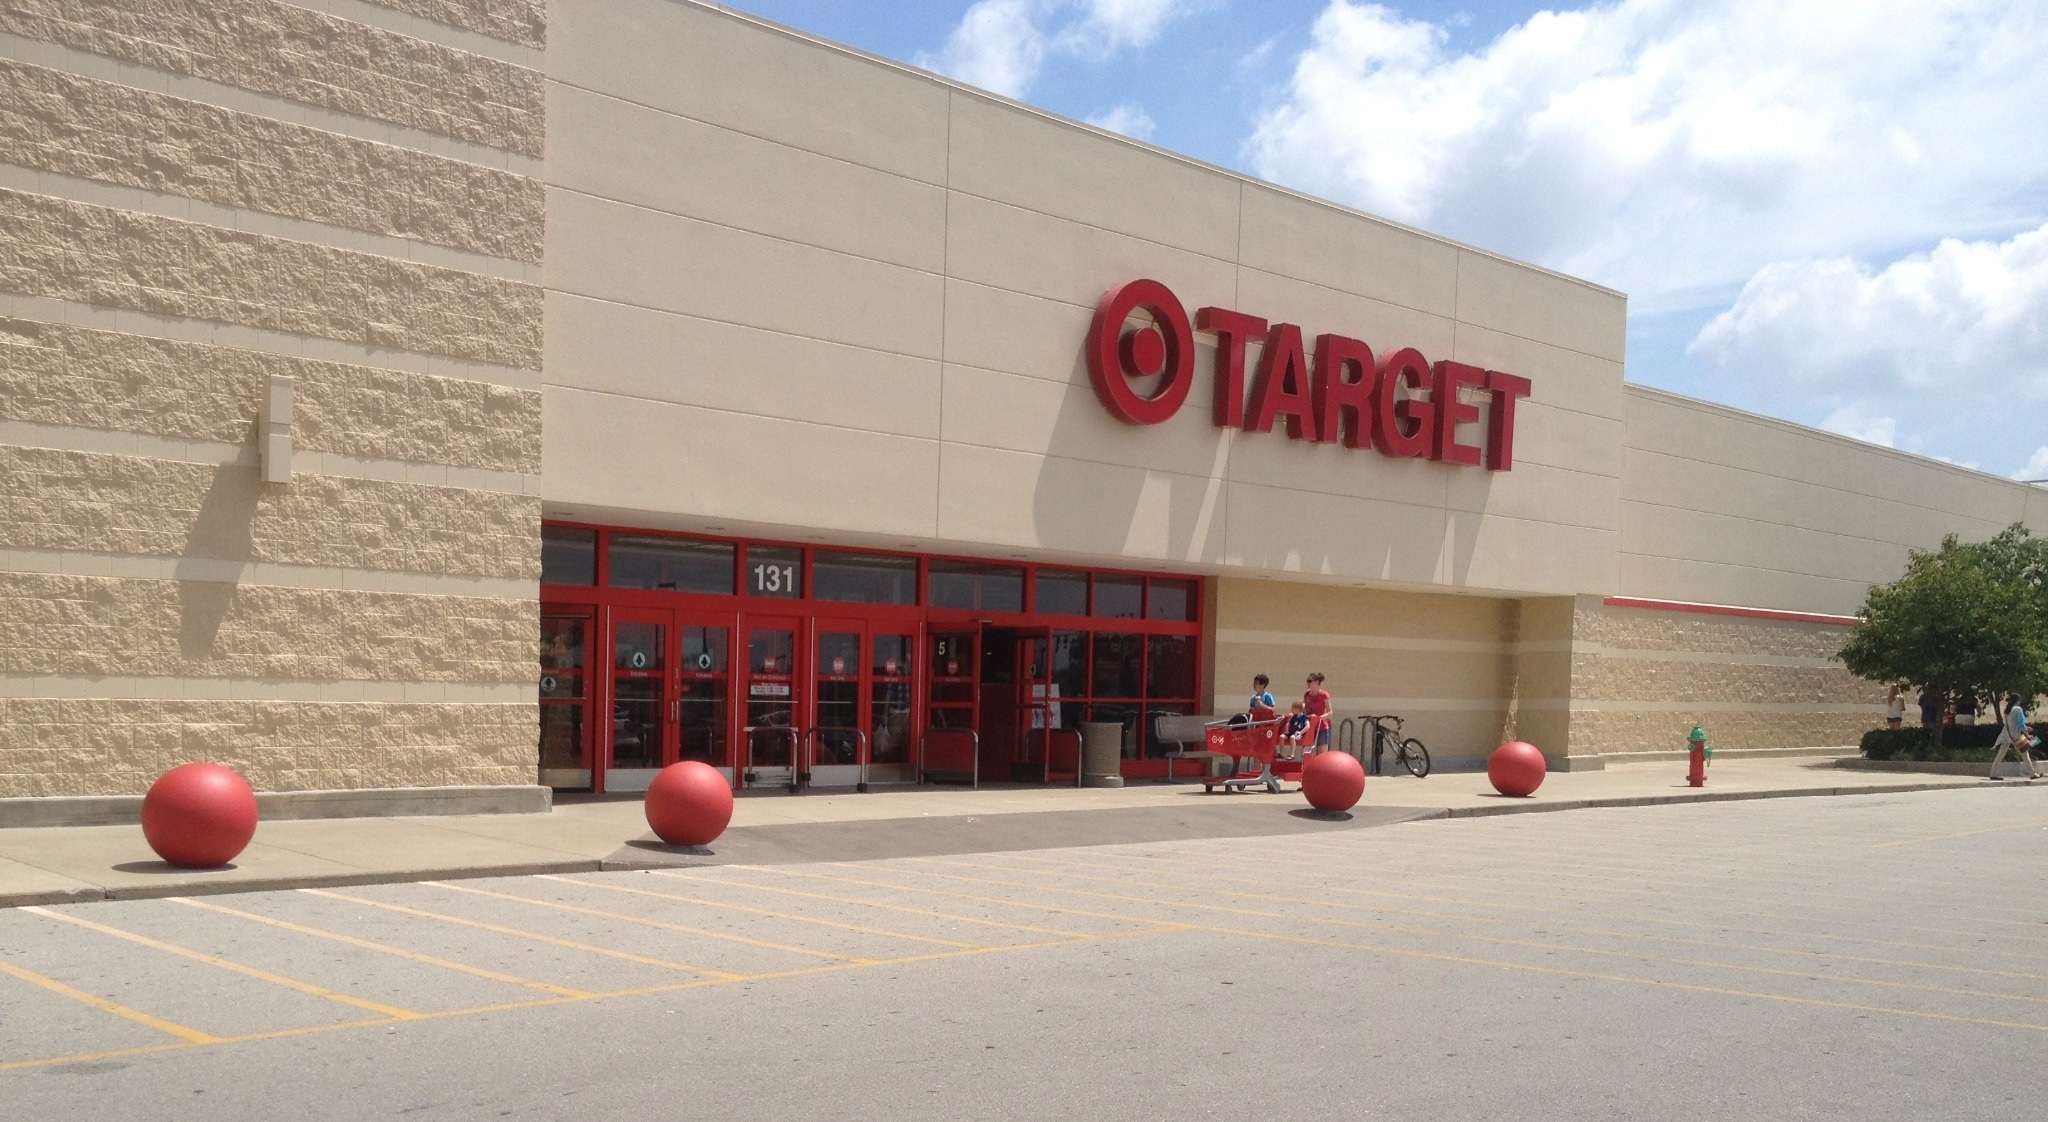 14 Little-Known Money Saving Tips Every Target Shopper Should Know